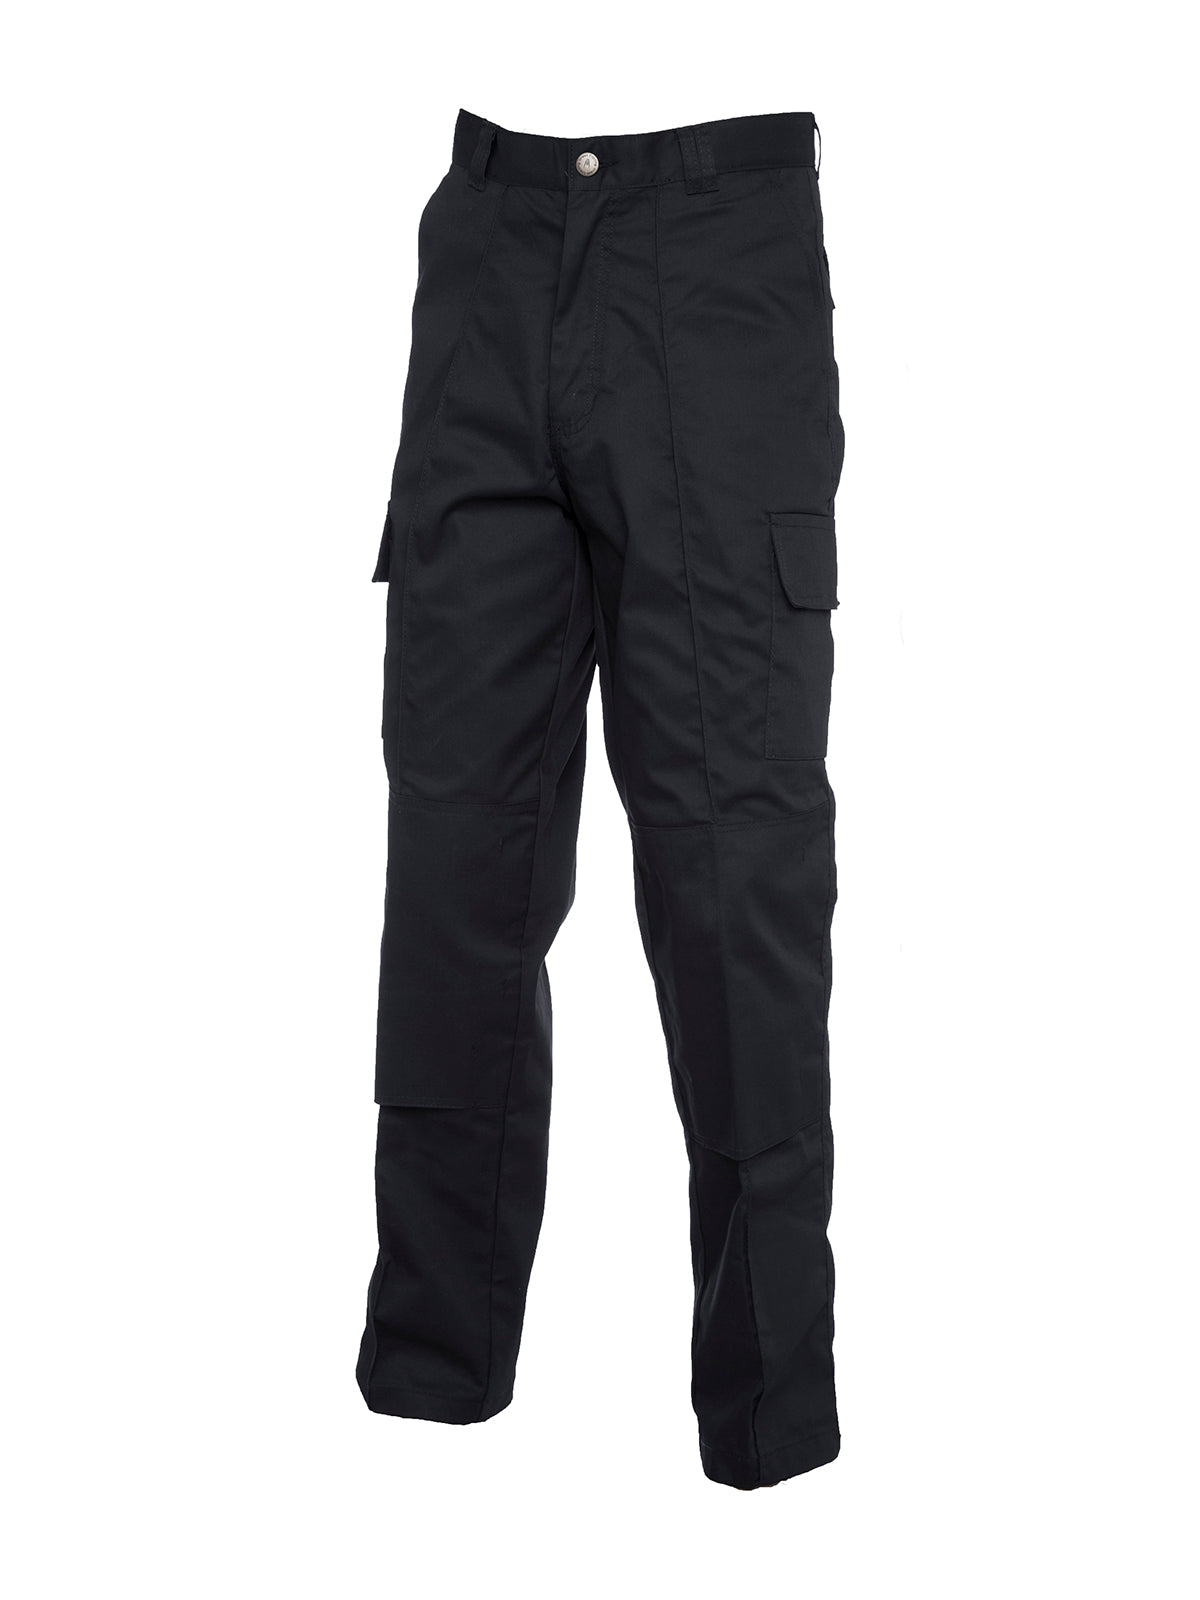 Cargo Trouser with Knee Pad Pockets Regular<!--Regular-->